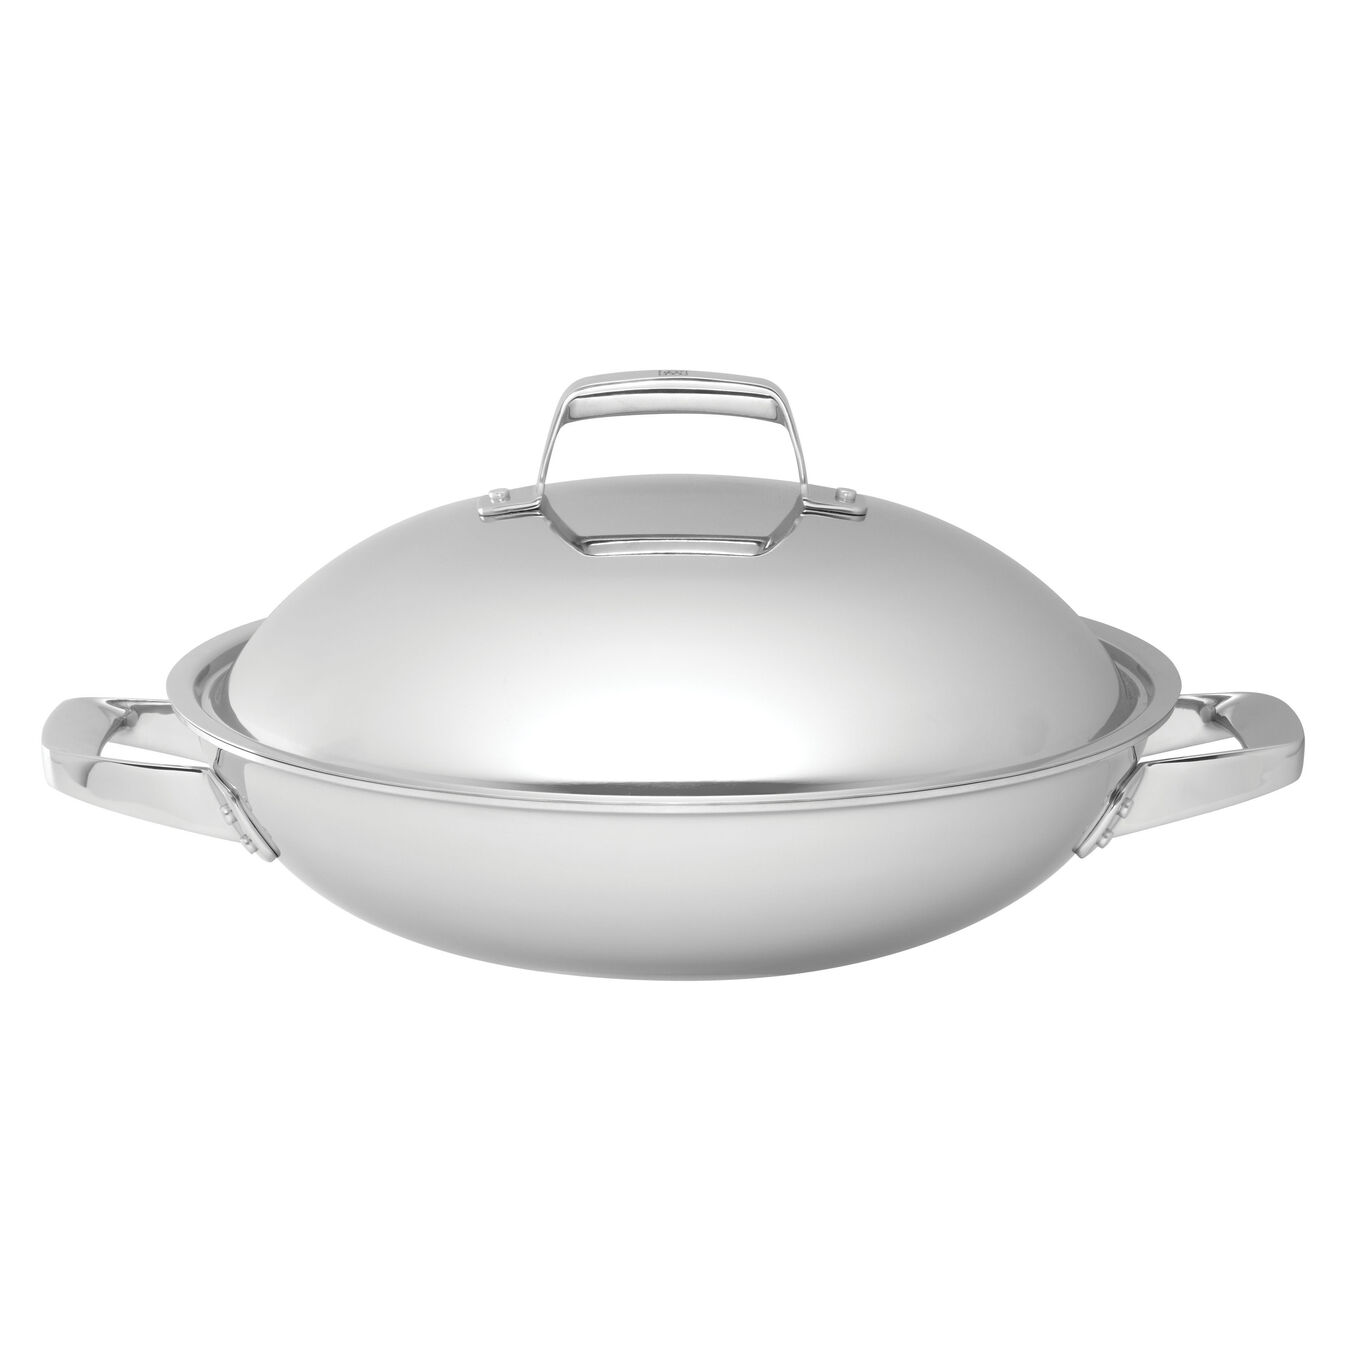 32 cm 18/10 Stainless Steel Wok,,large 1